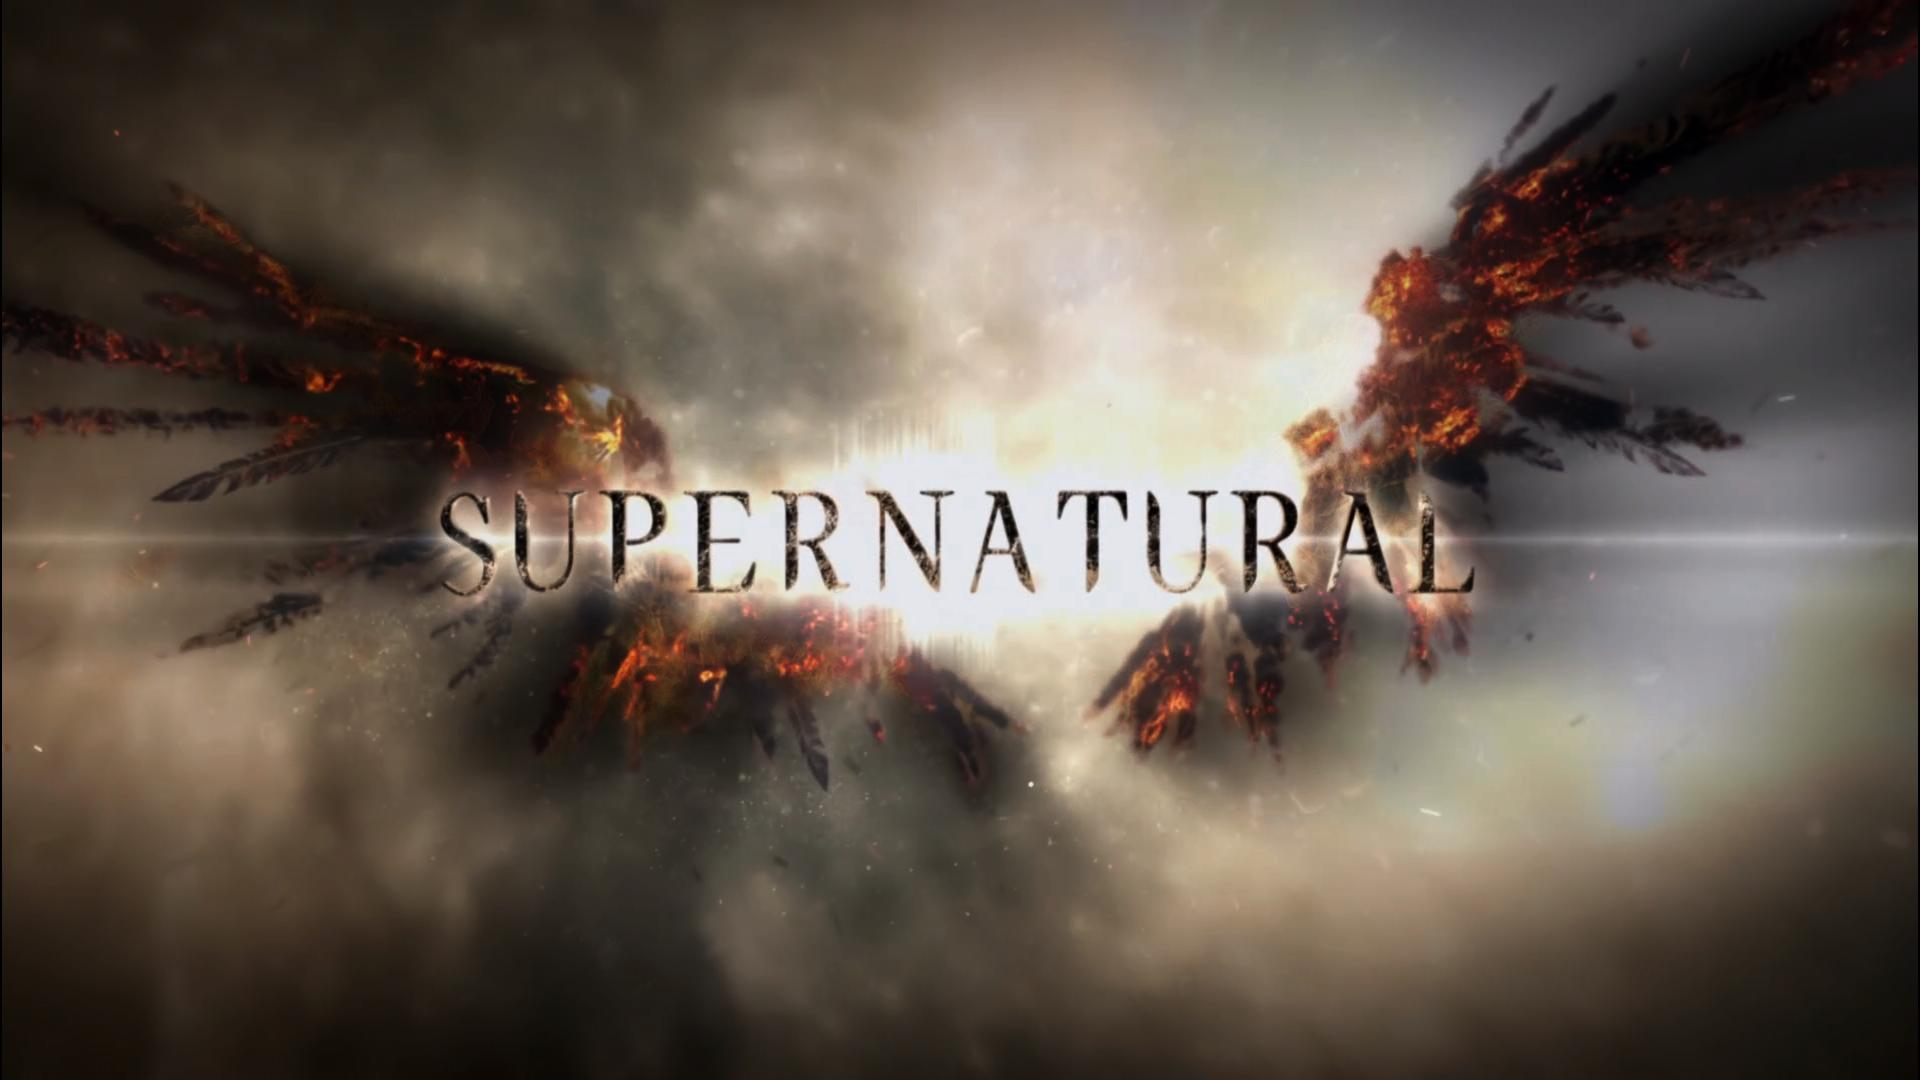 supernatural wallpapers - Taringa!